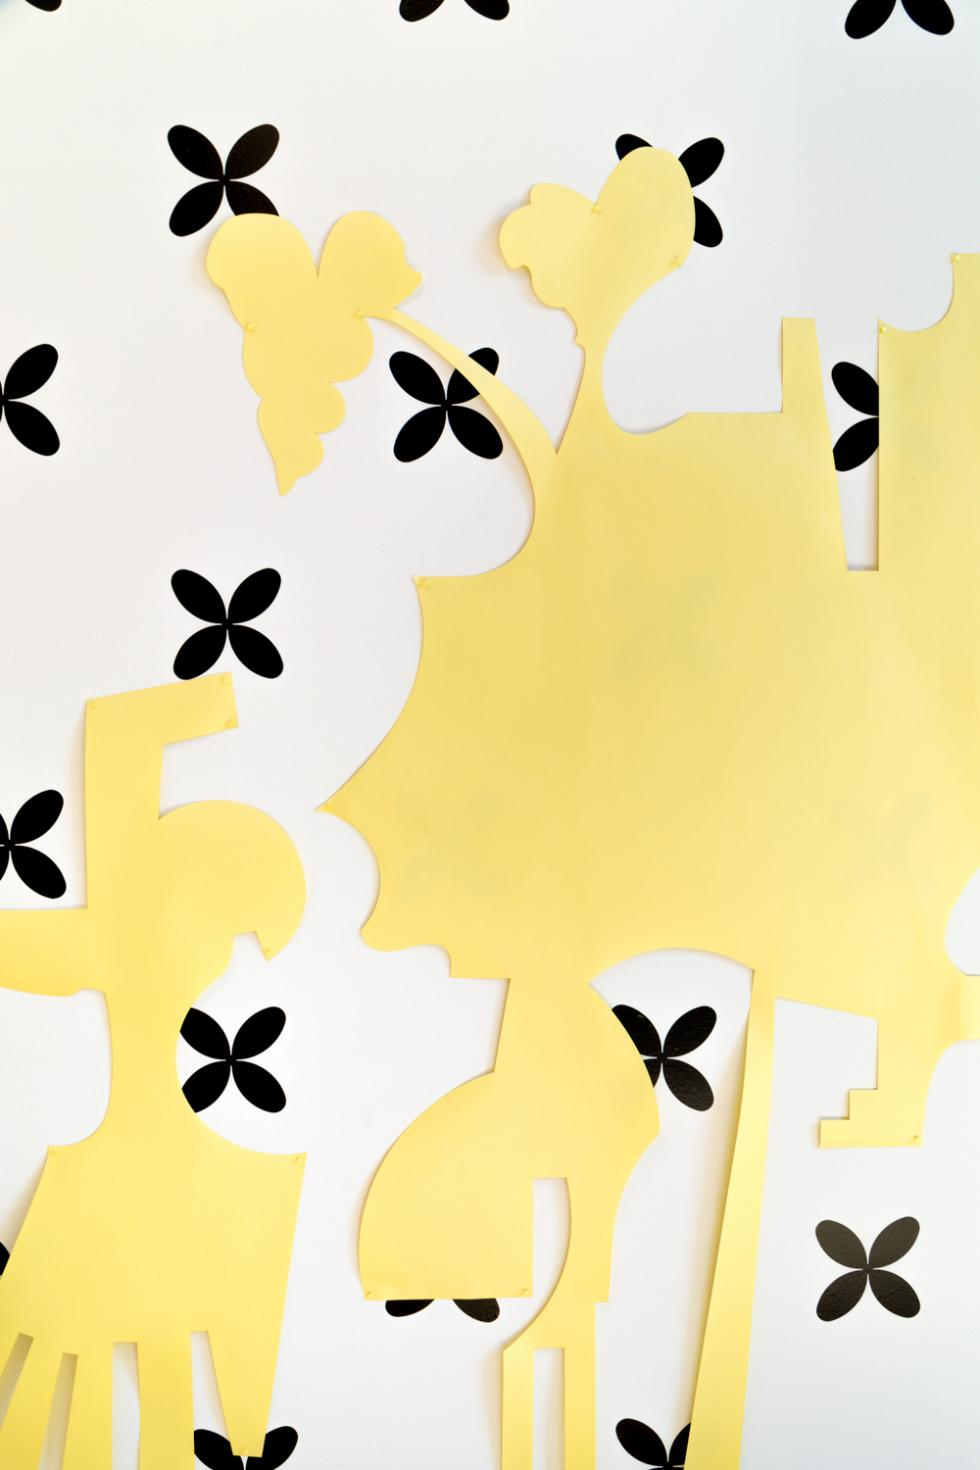 detail of black star shapes against a white wall with yellow abstract shapes draped across